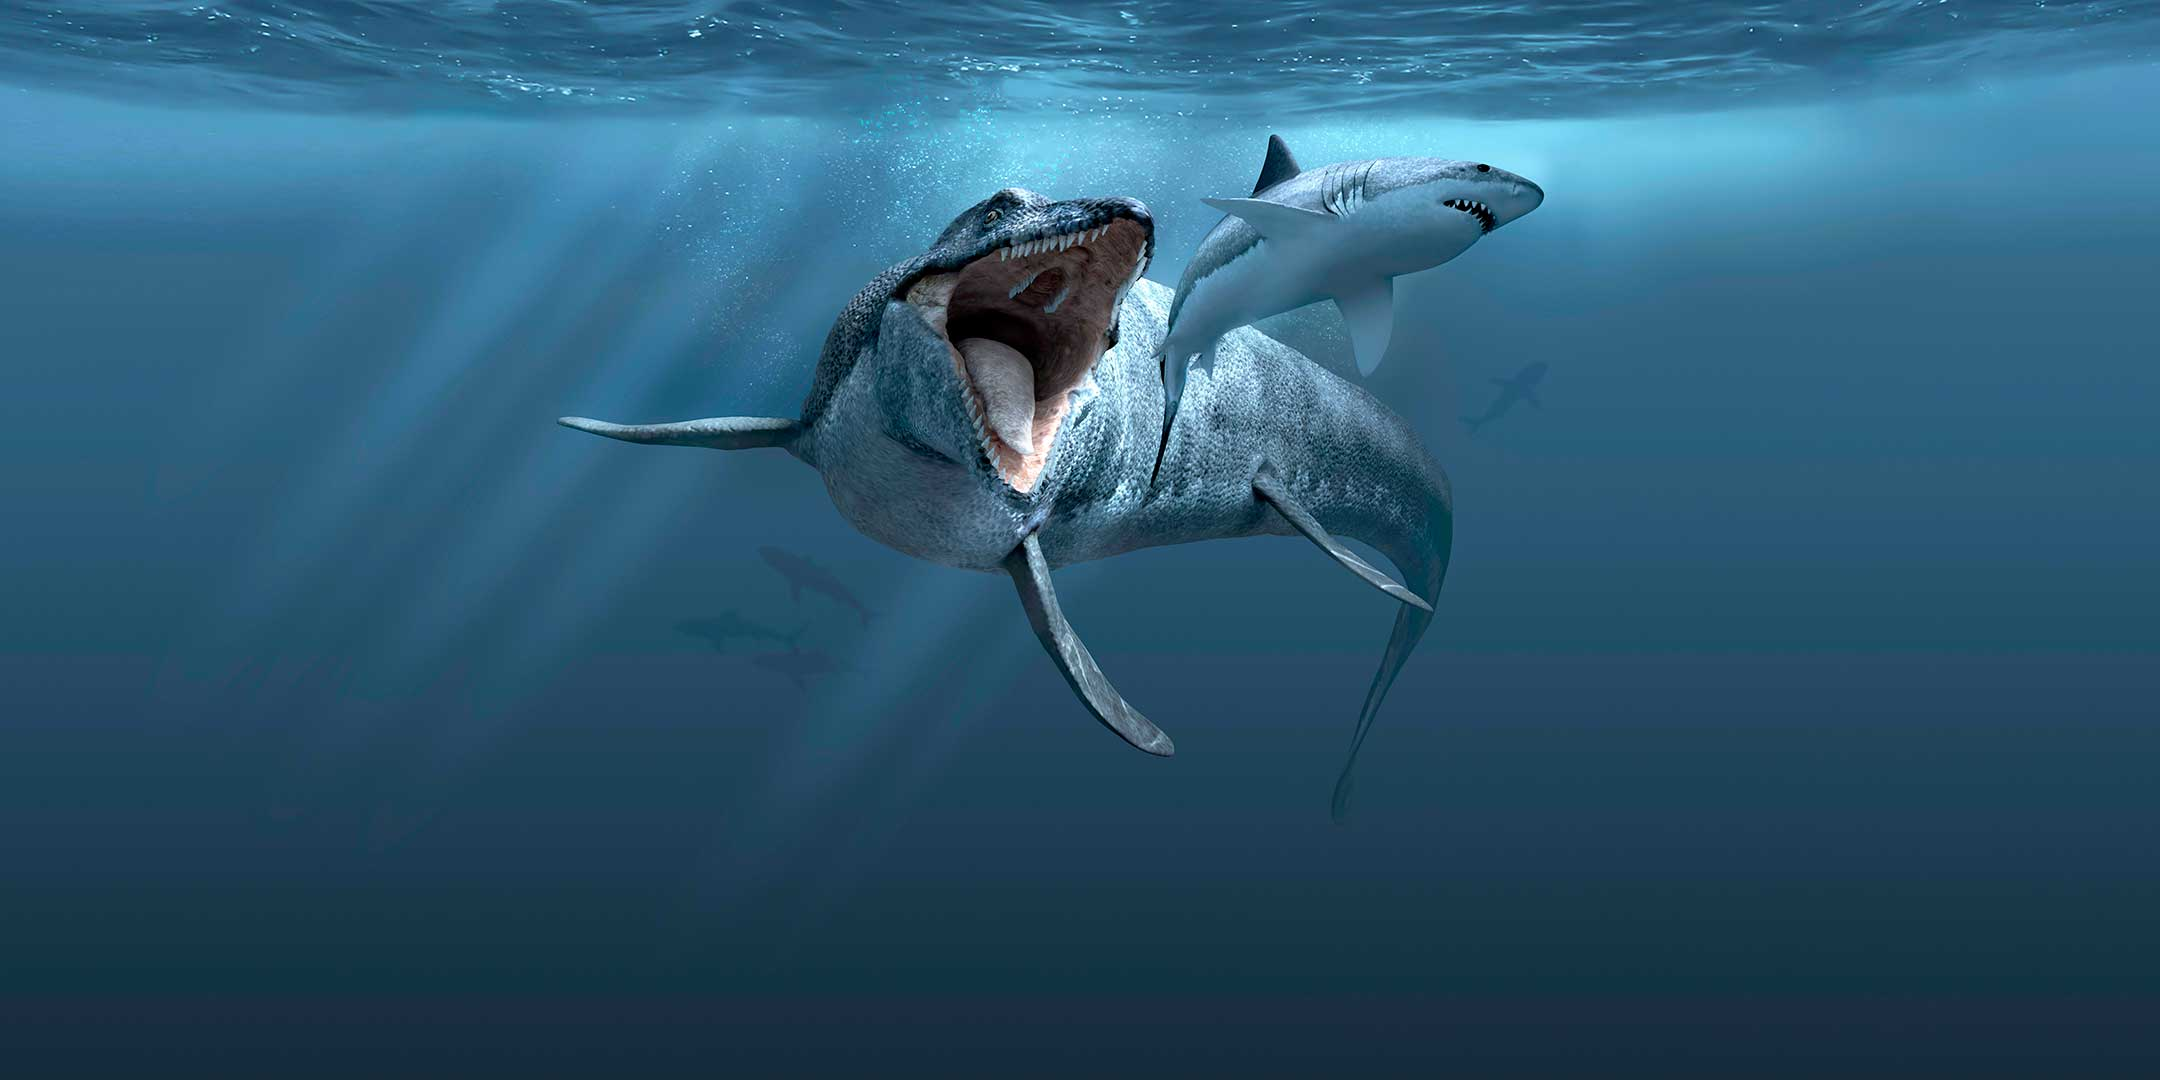 Mosasaurus chasing Great White Shark